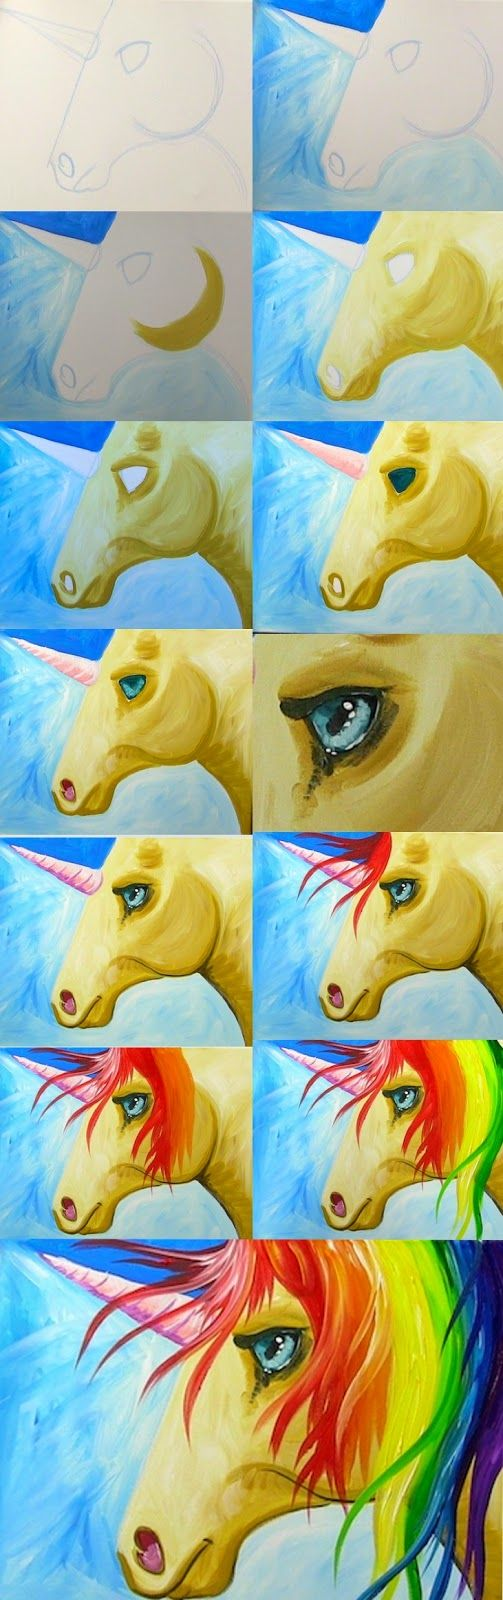 Painting with the Art Sherpa: Easy How to Paint a Rainbow Unicorn Step By Step for the Kid in all of us! #diy More Unicorn how to www.hartparty.com